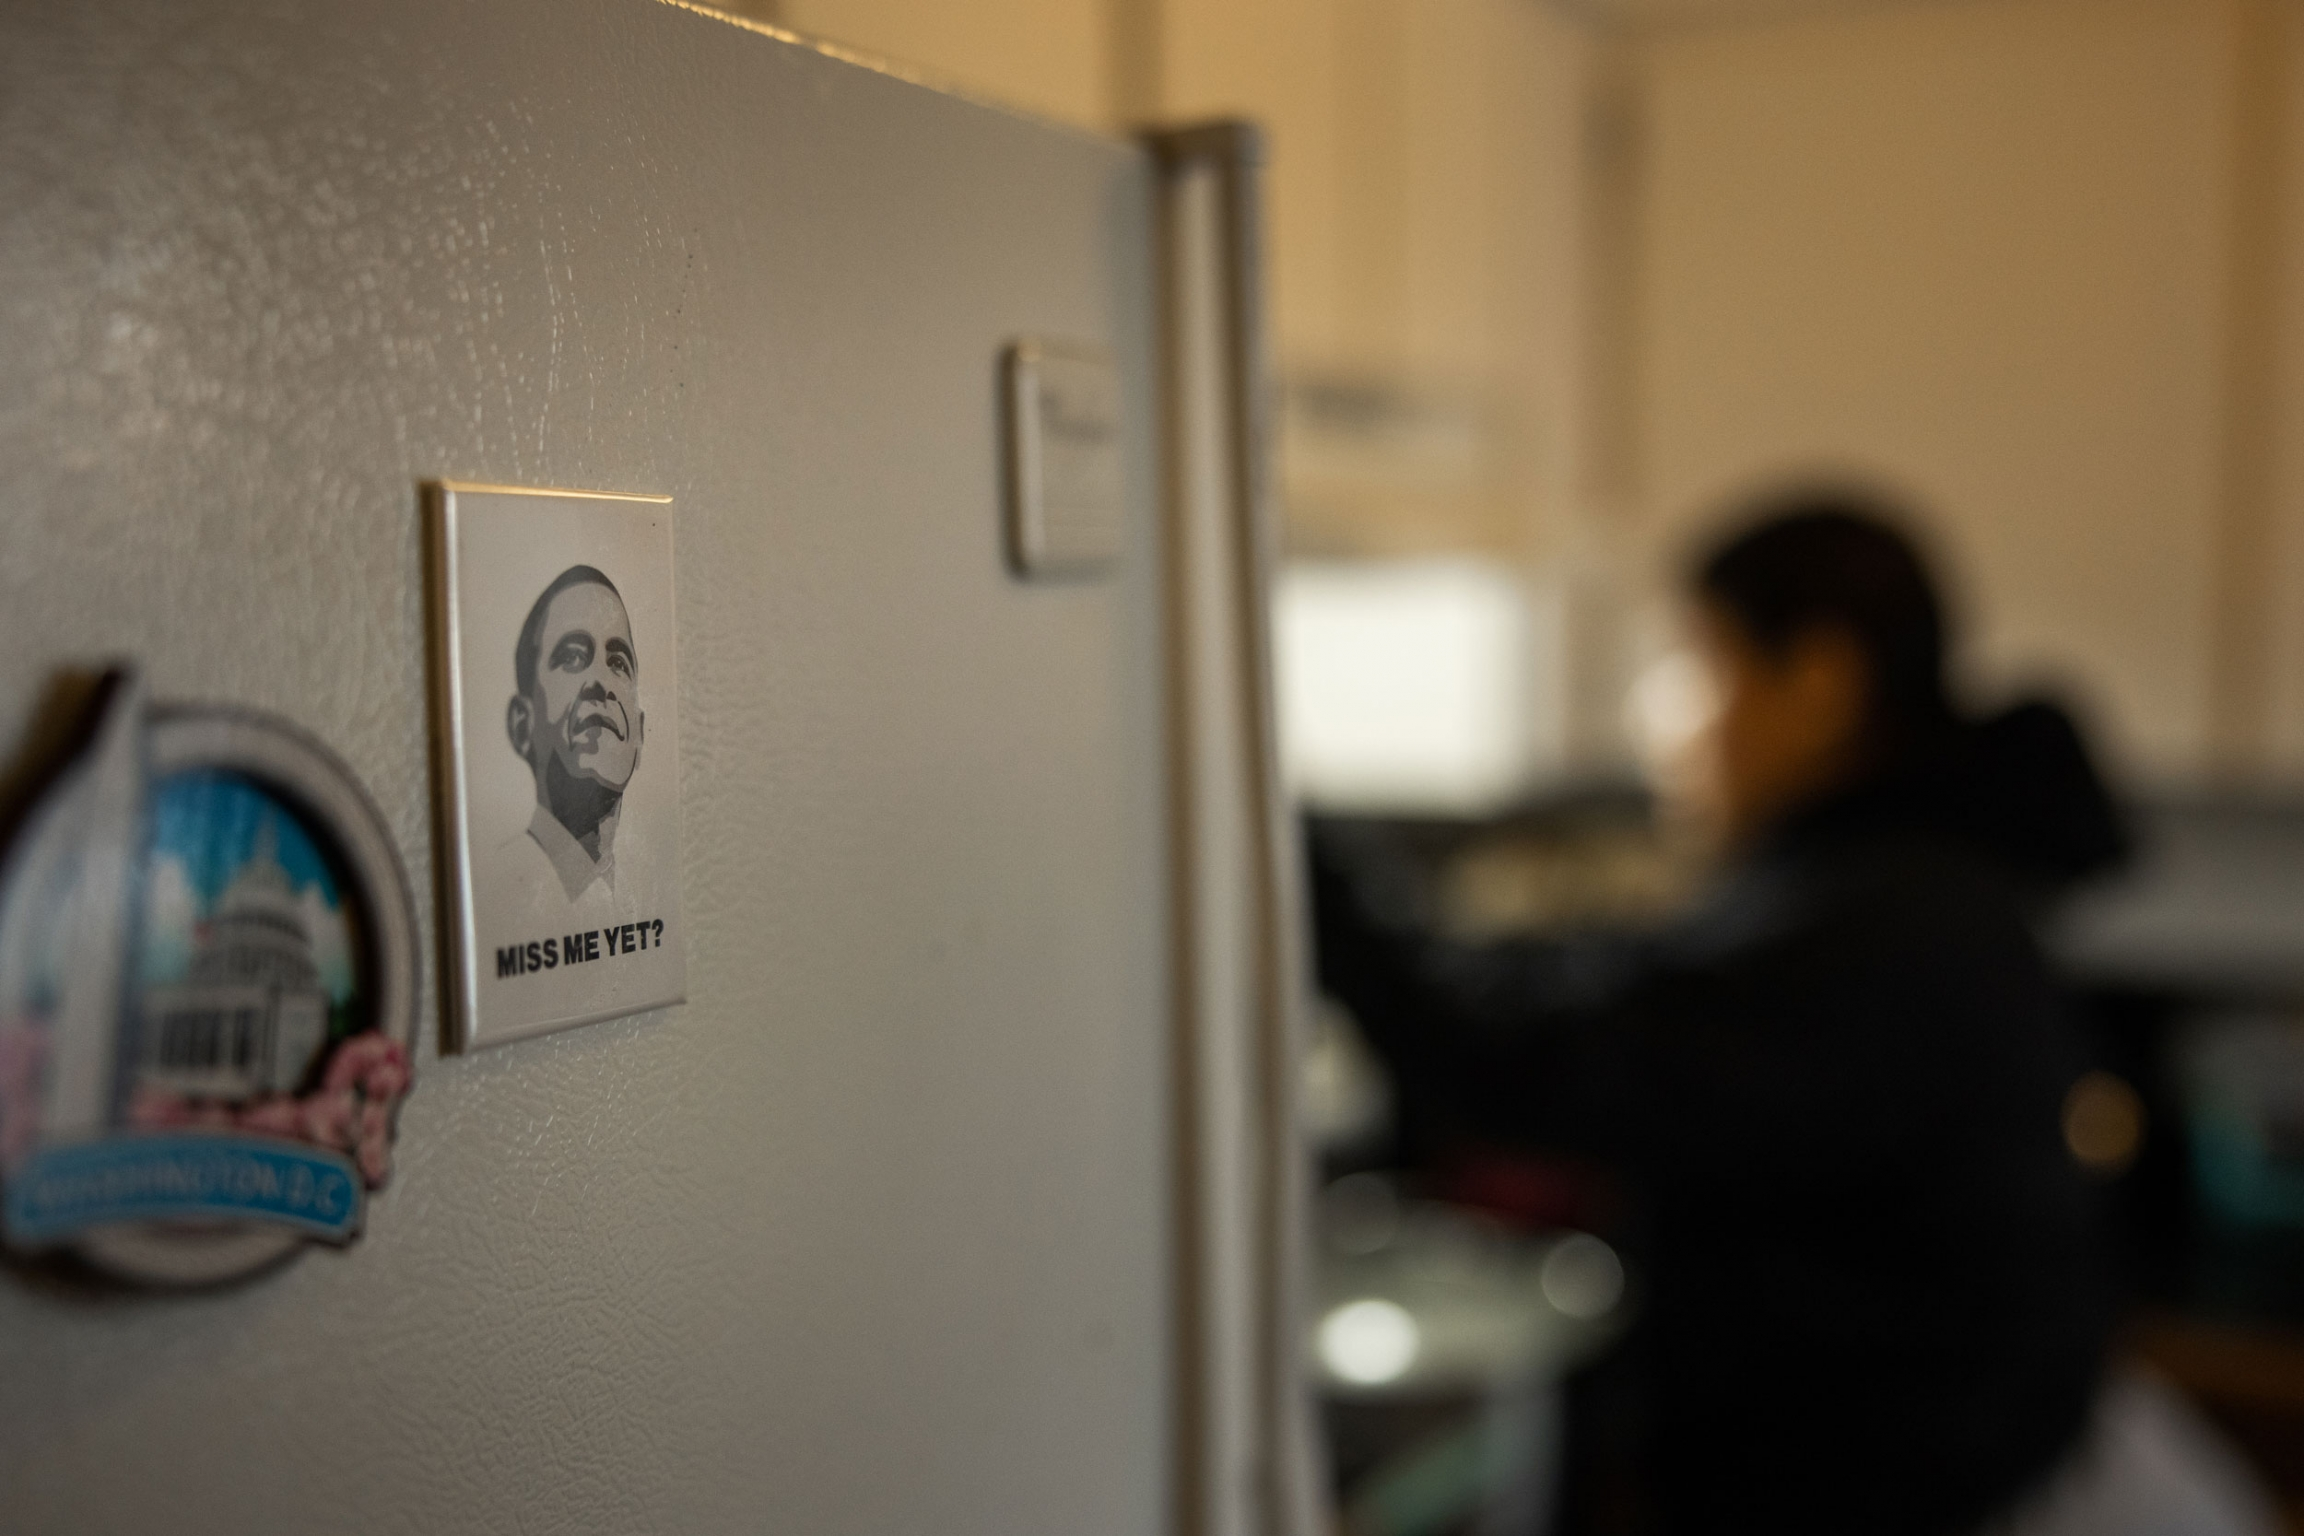 A magnet with a portrait of President Barack Obama is shown with a woman in the distance in soft focus.